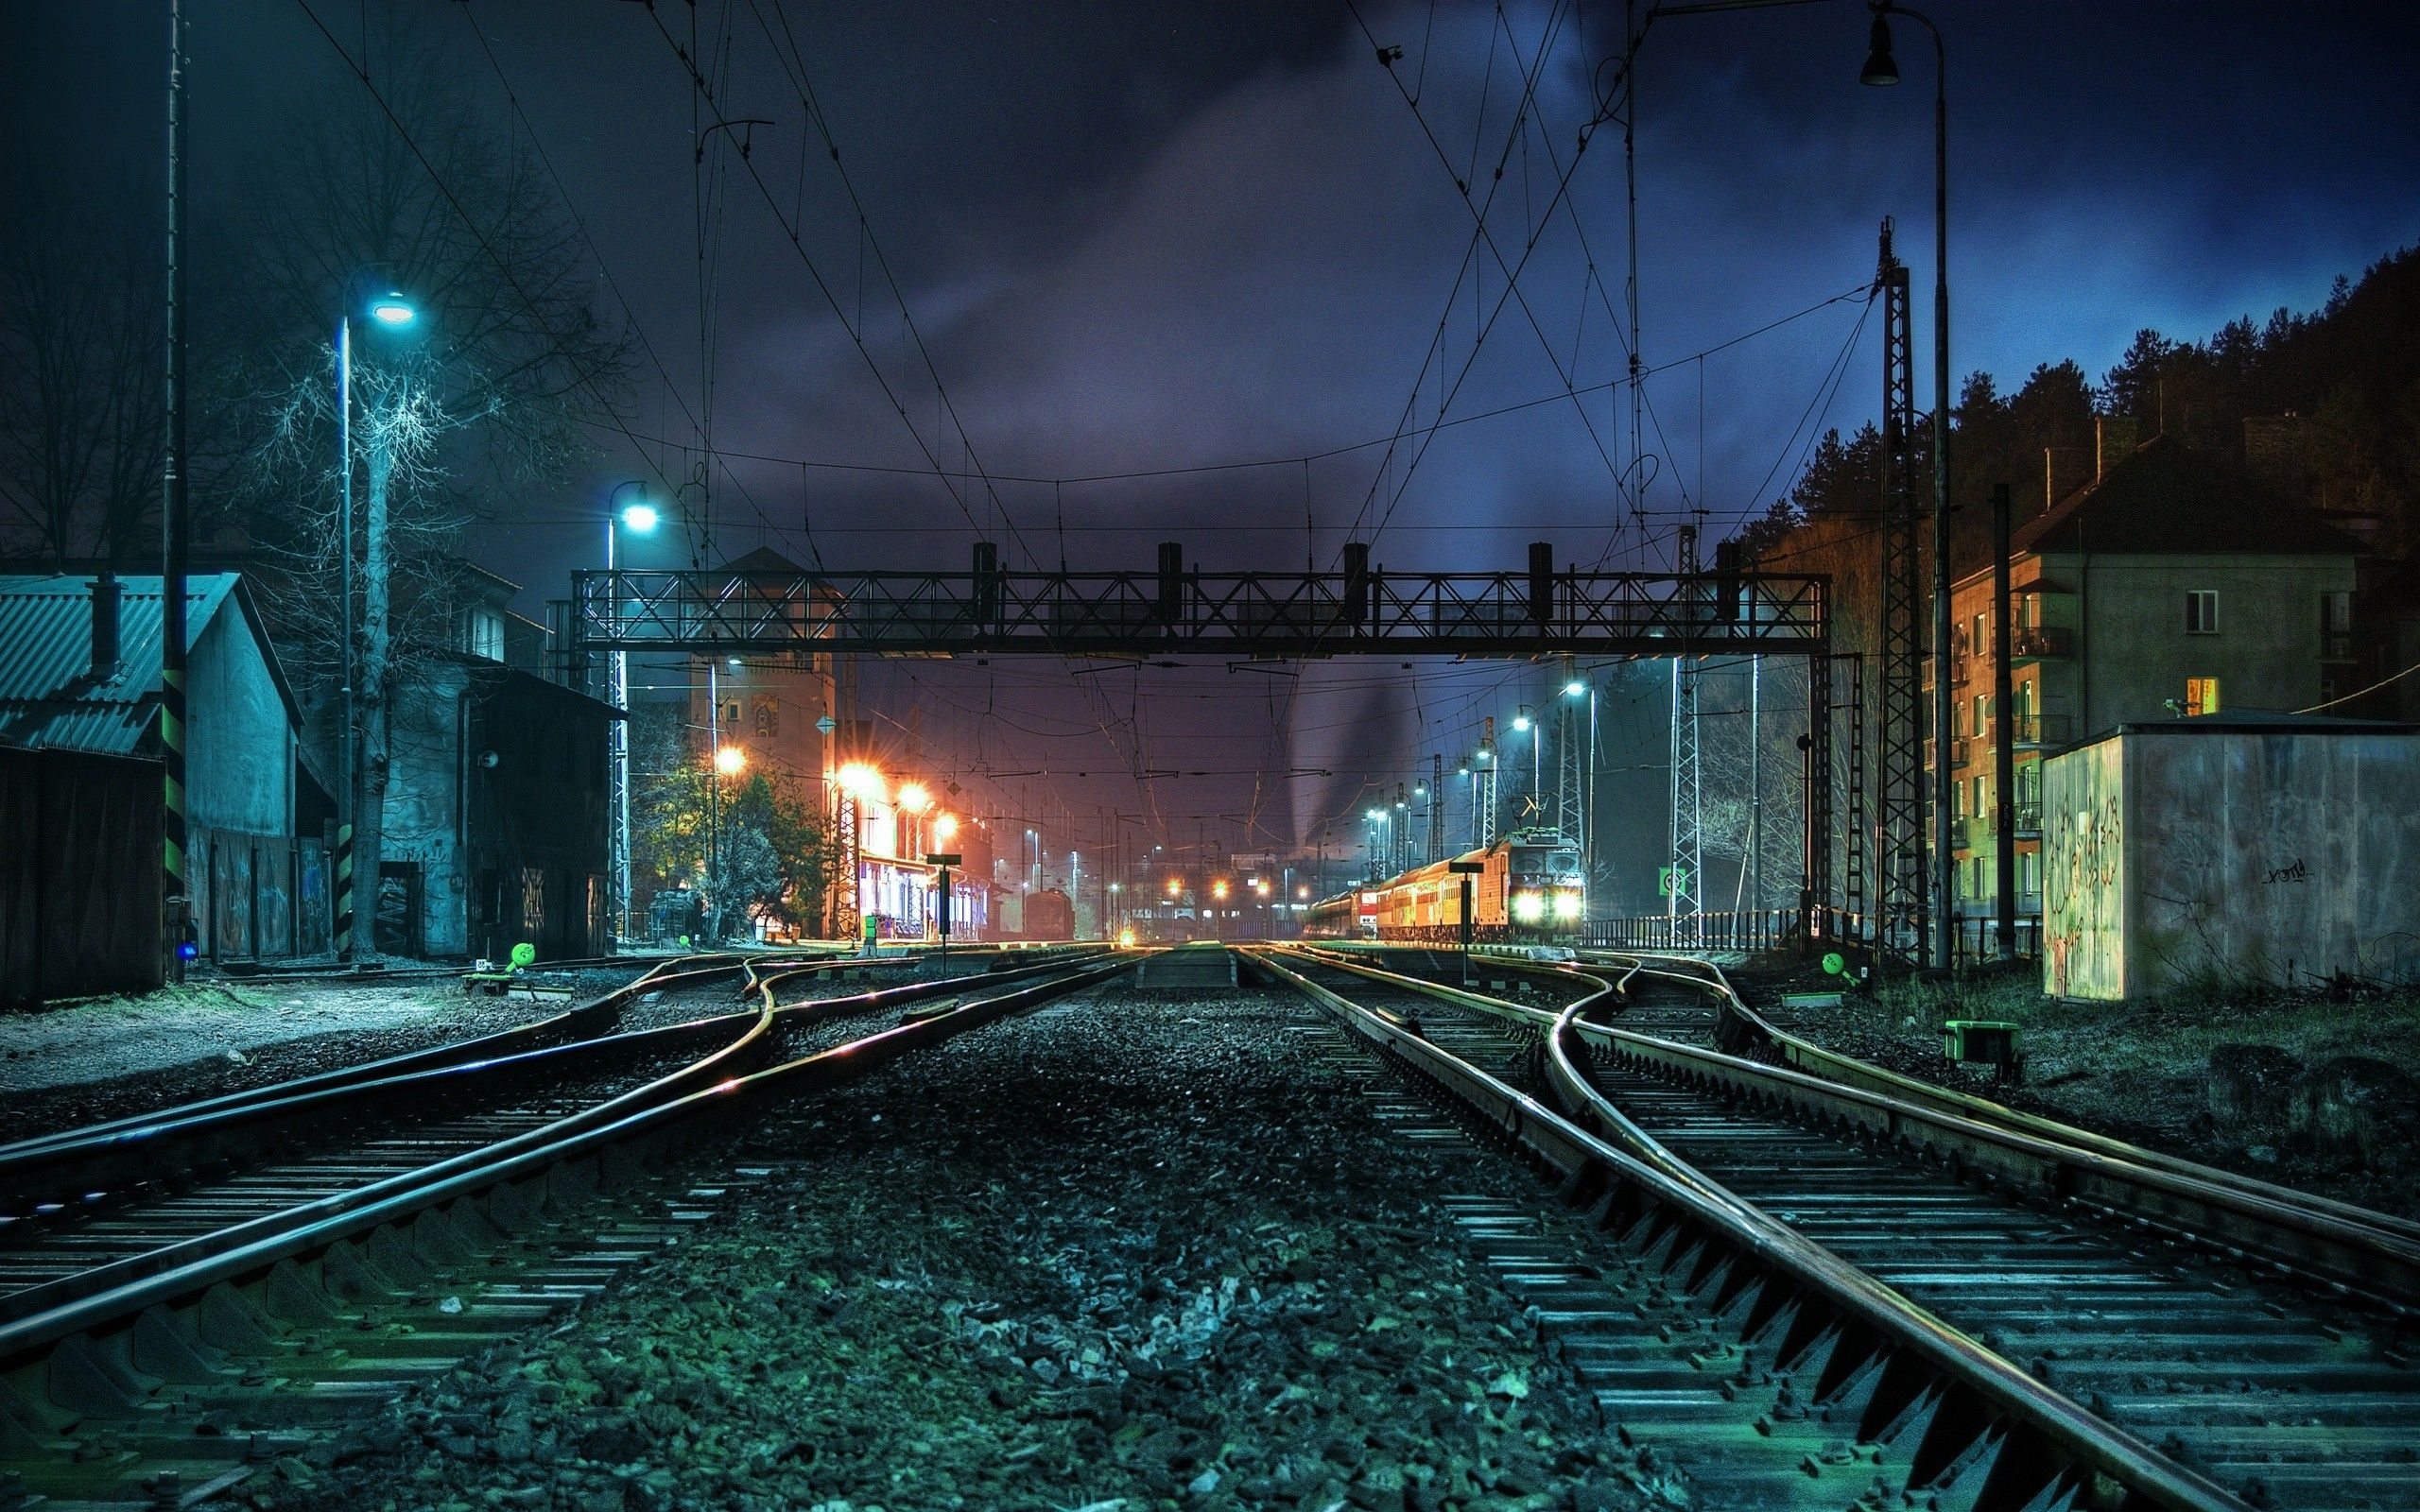 Image detail for ,Night Lights Photography Railroad Tracks Railroads ,  2560x1600 .